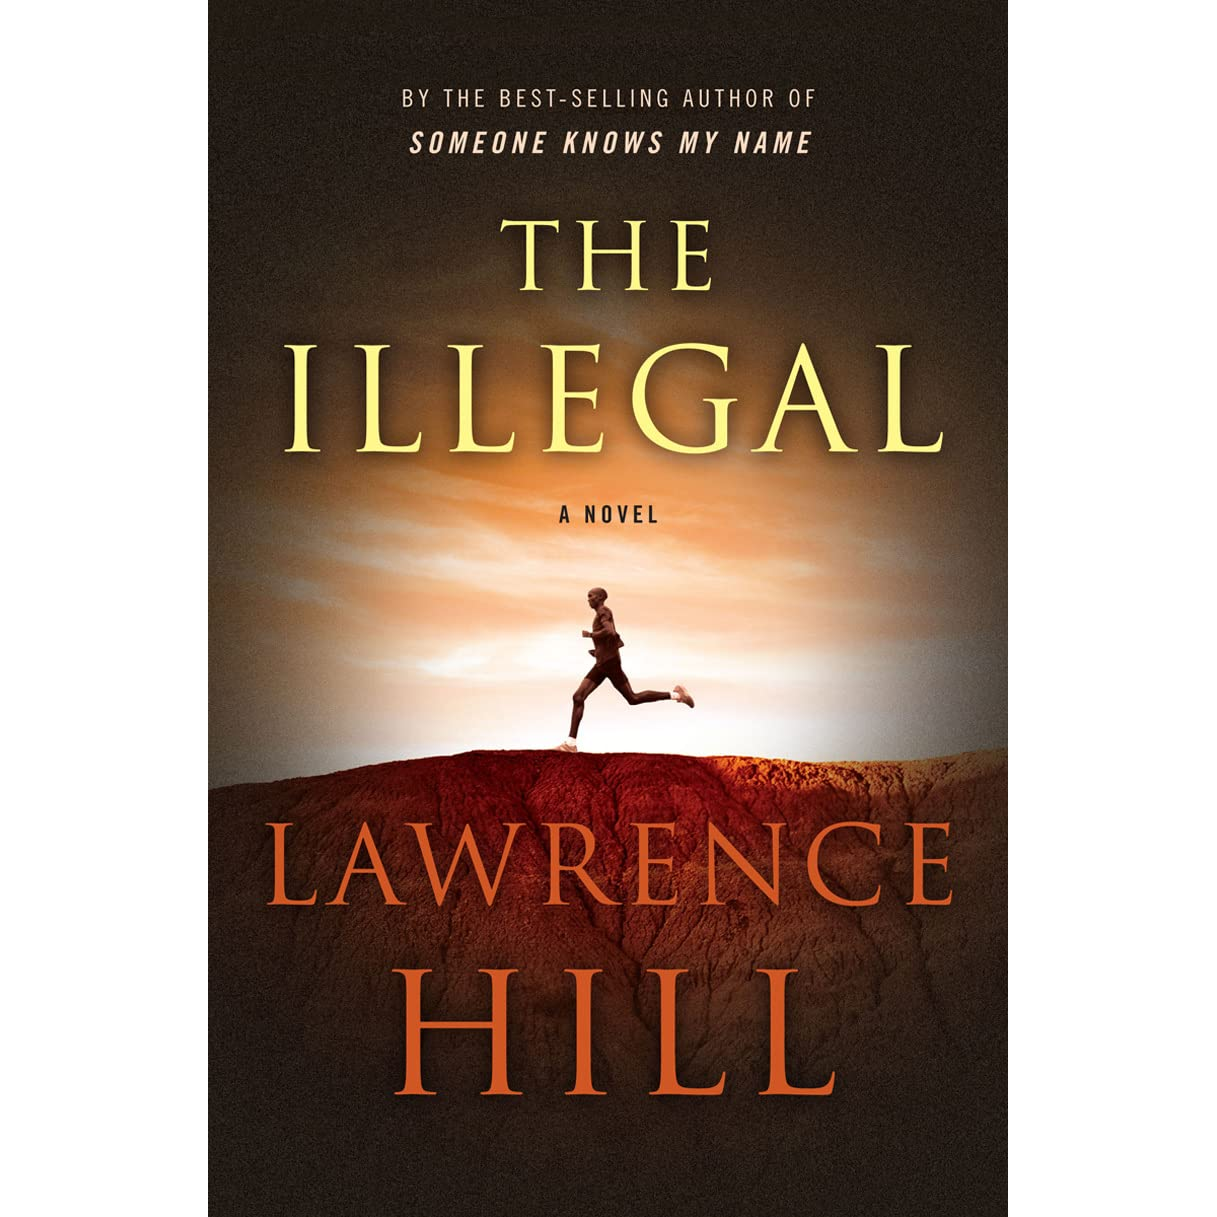 the book of negroes by lawrence hill essay Book of negroes essay topics  book of negroes: introduction by lawrence hill  book of negroes is my attempt to give this fascinating but little-known story a .